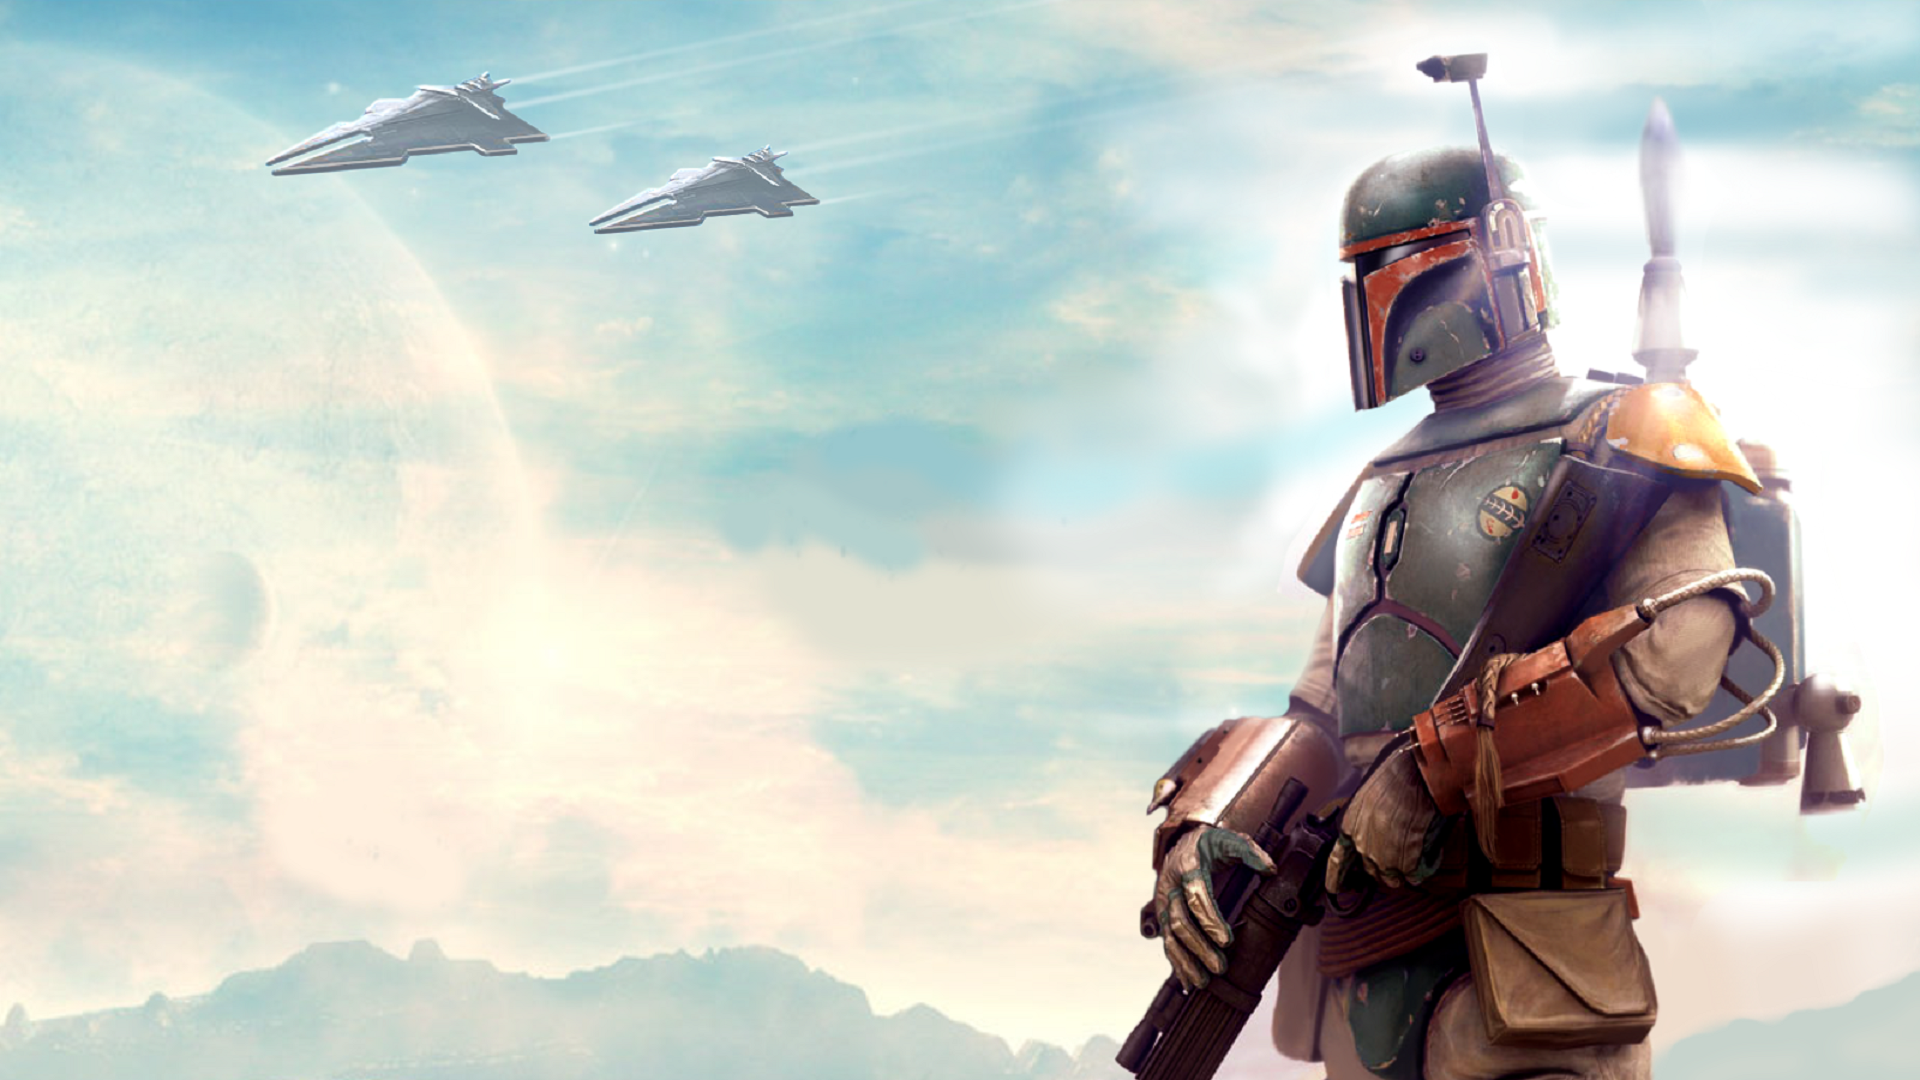 Boba fett   wallpaper 1920x1080